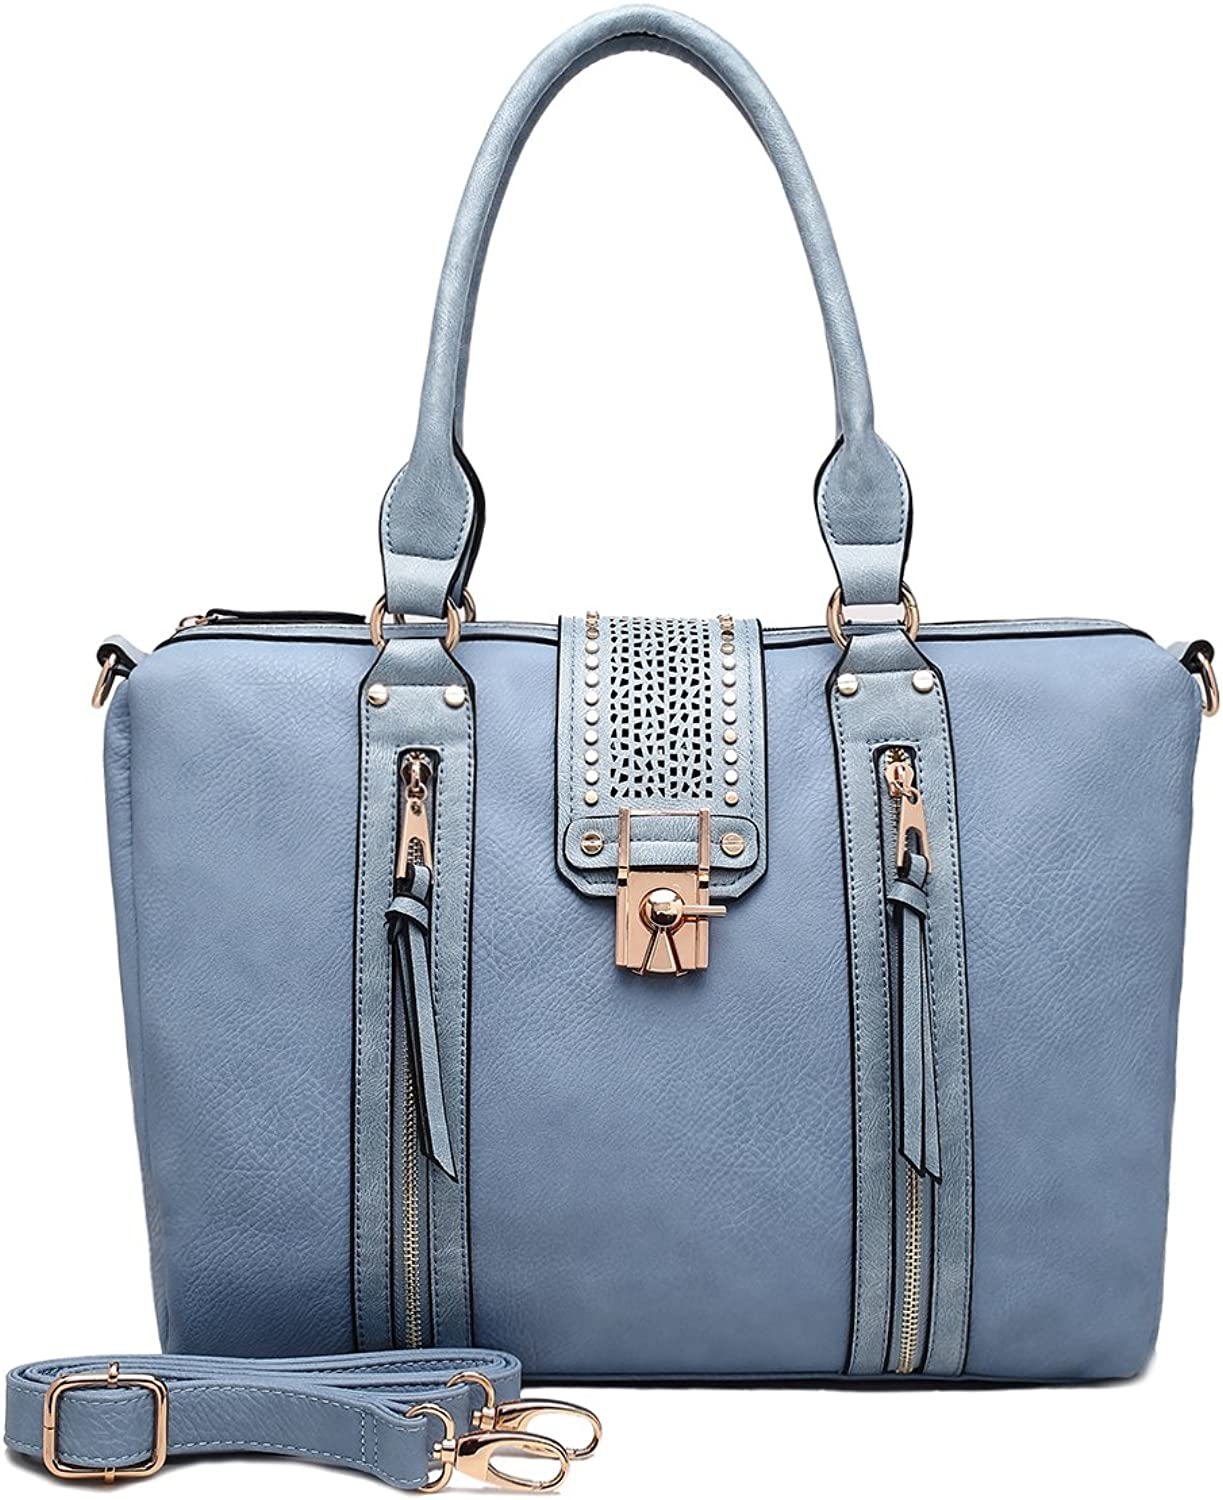 bluee Olive Womens Handbag 16150